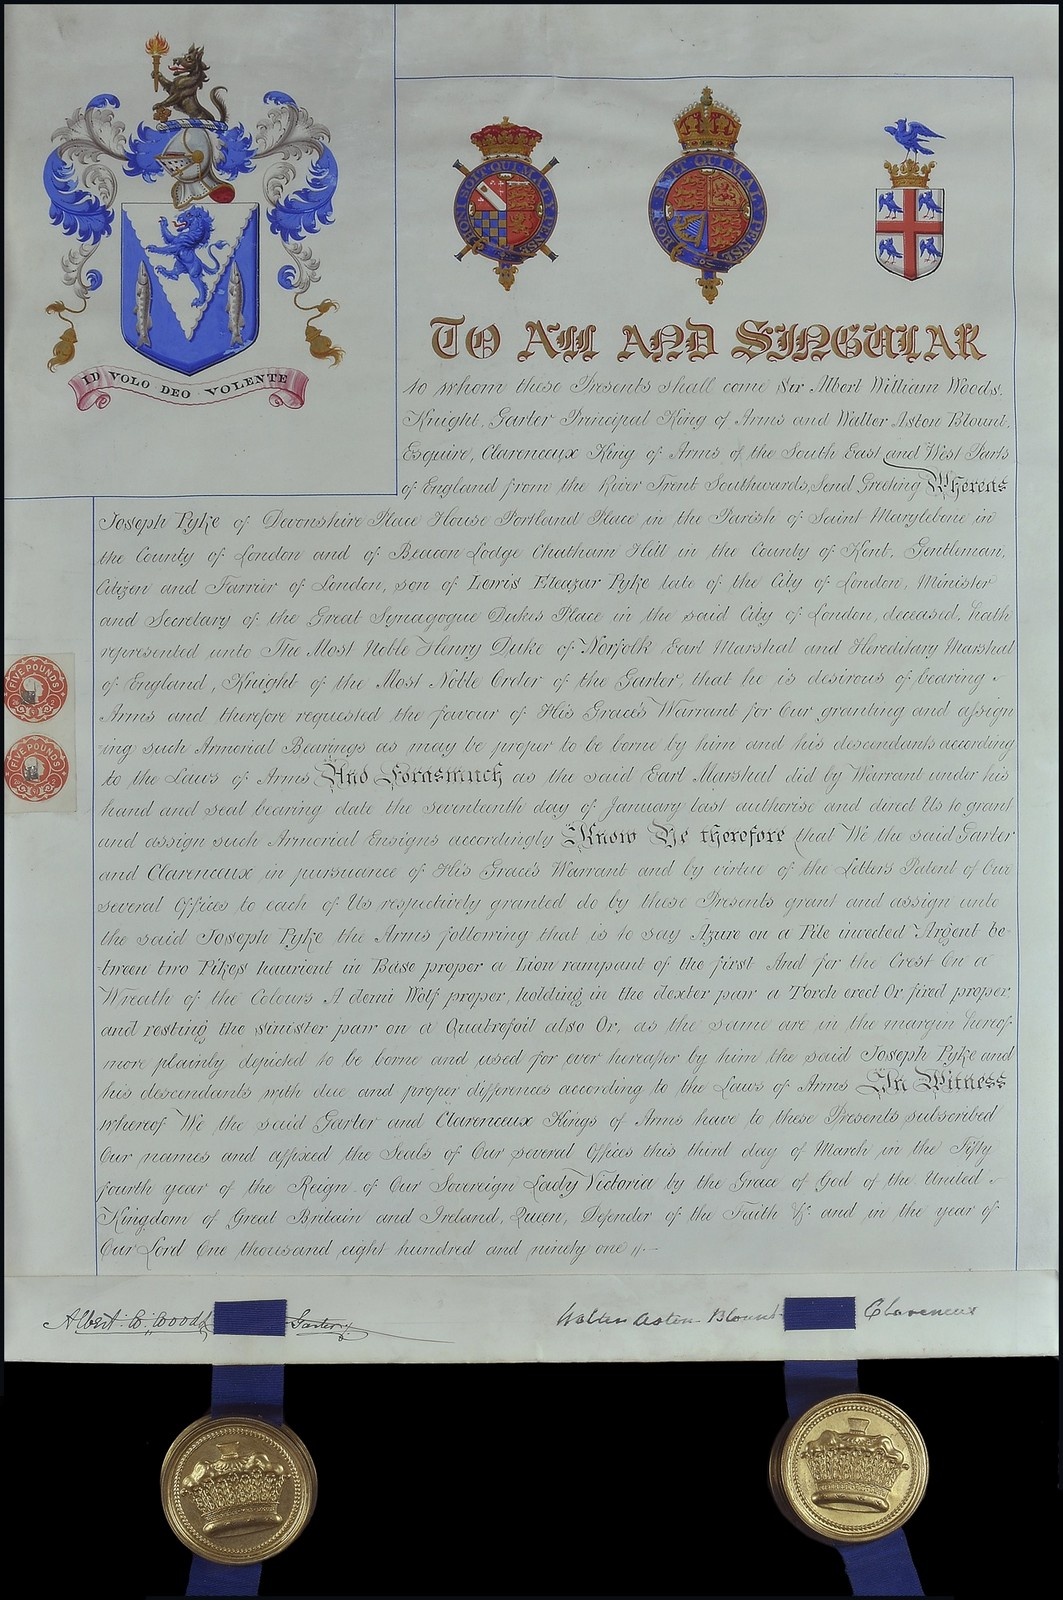 Grant of Arms, an original illuminated grant of arms on vellum to Joseph Pyke, of Devonshire Place